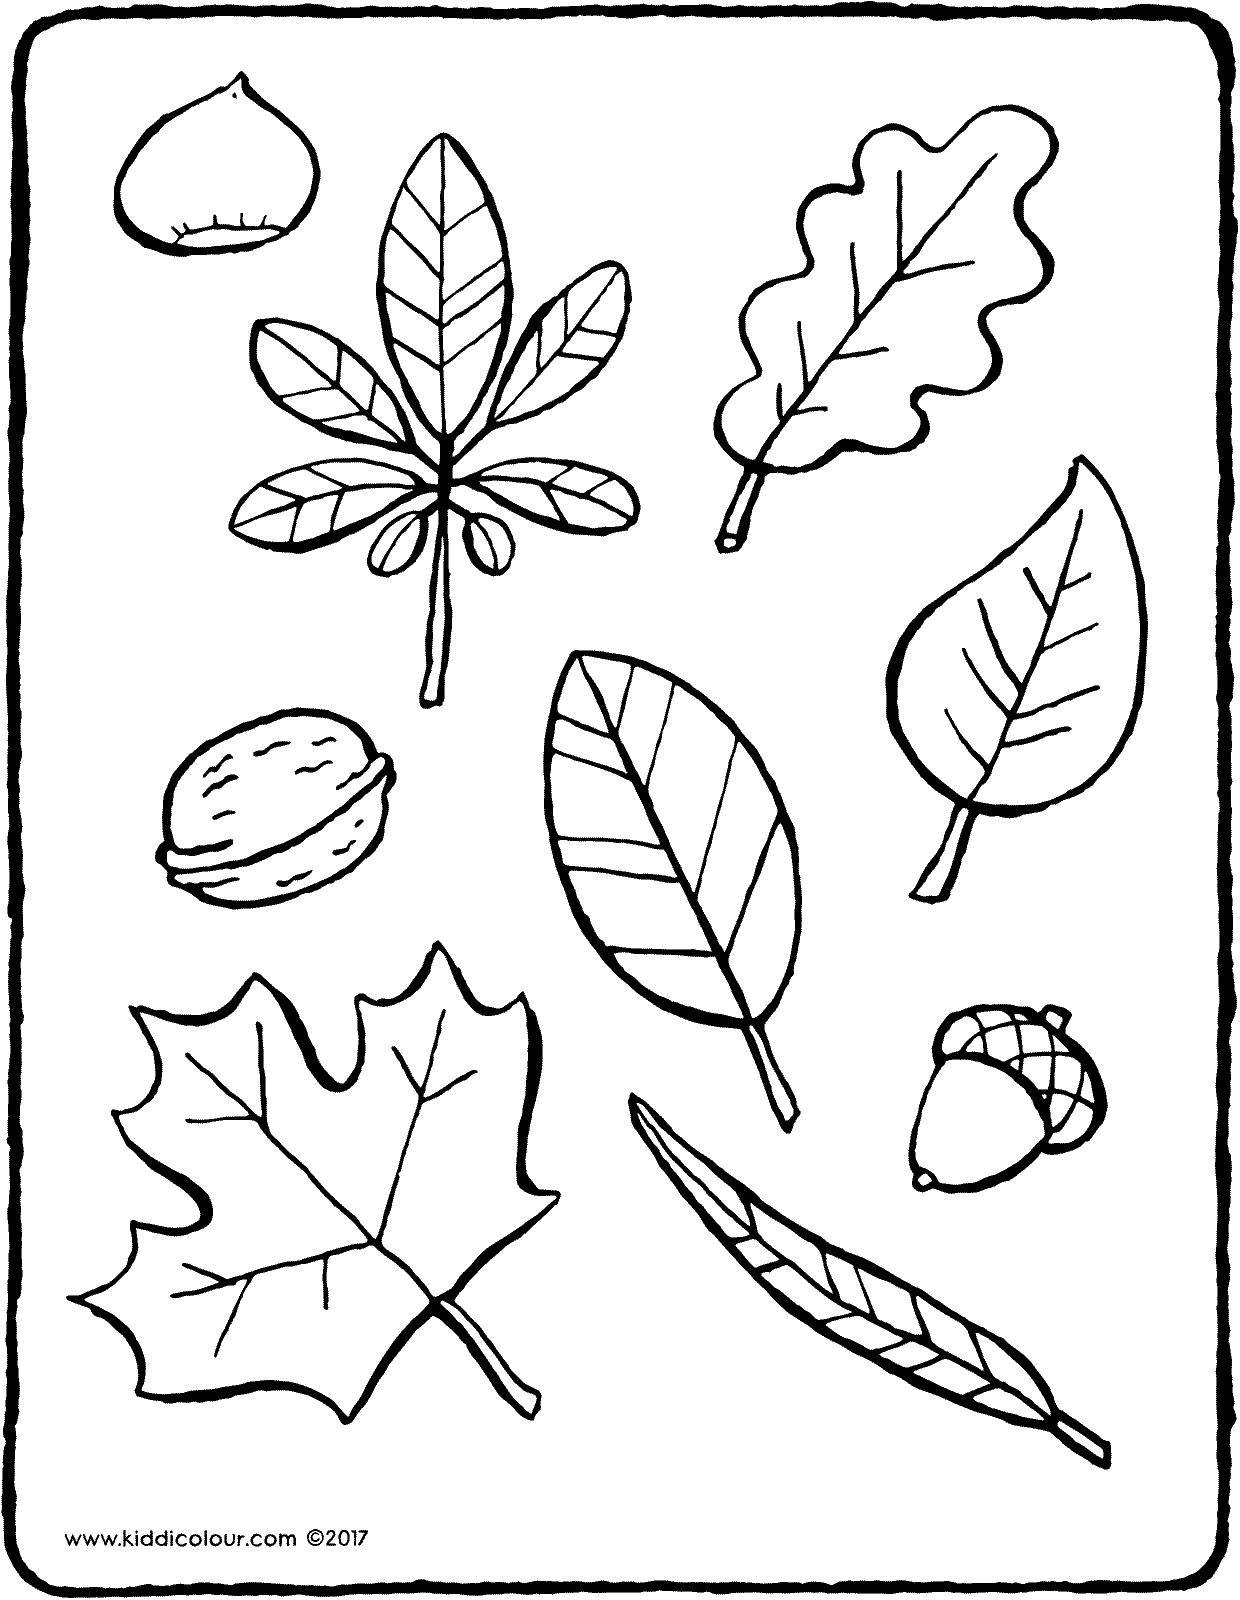 coloring pictures leaves 12 vector leaf coloring pages adult images leaf coloring leaves pictures coloring